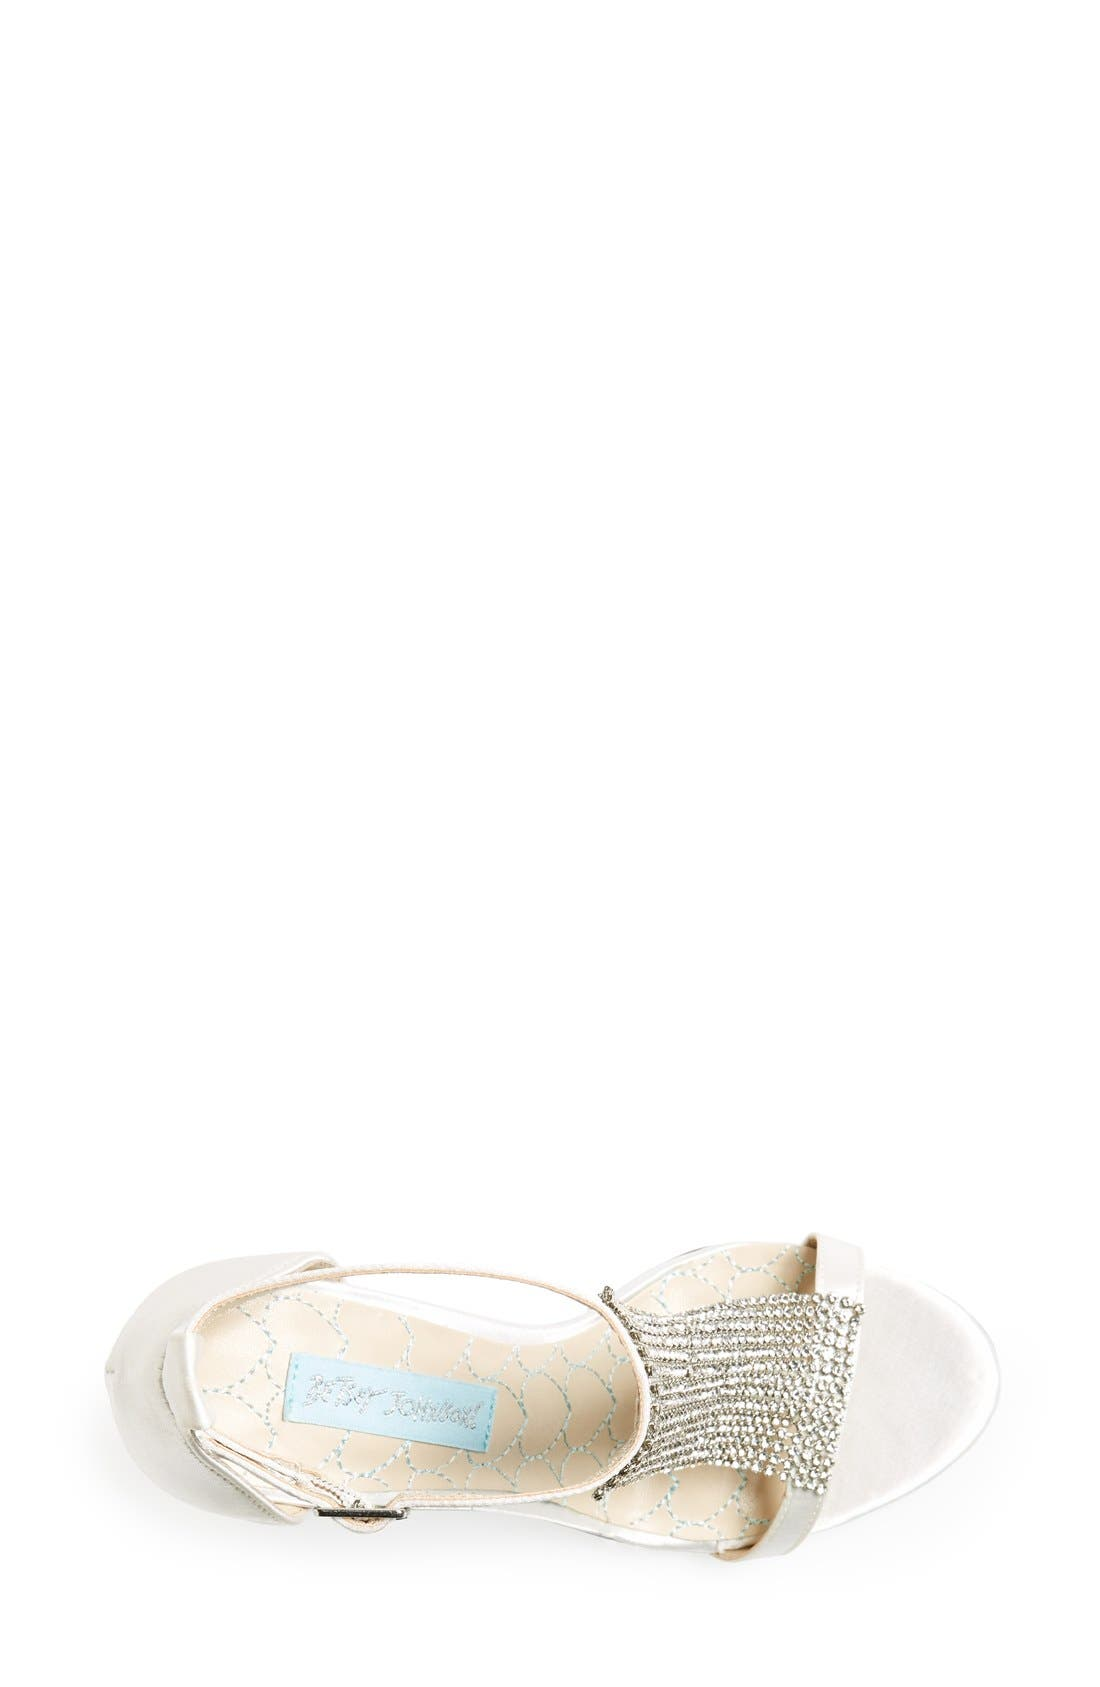 Alternate Image 3  - Blue by Betsey Johnson 'Mesh' Sandal (Women)